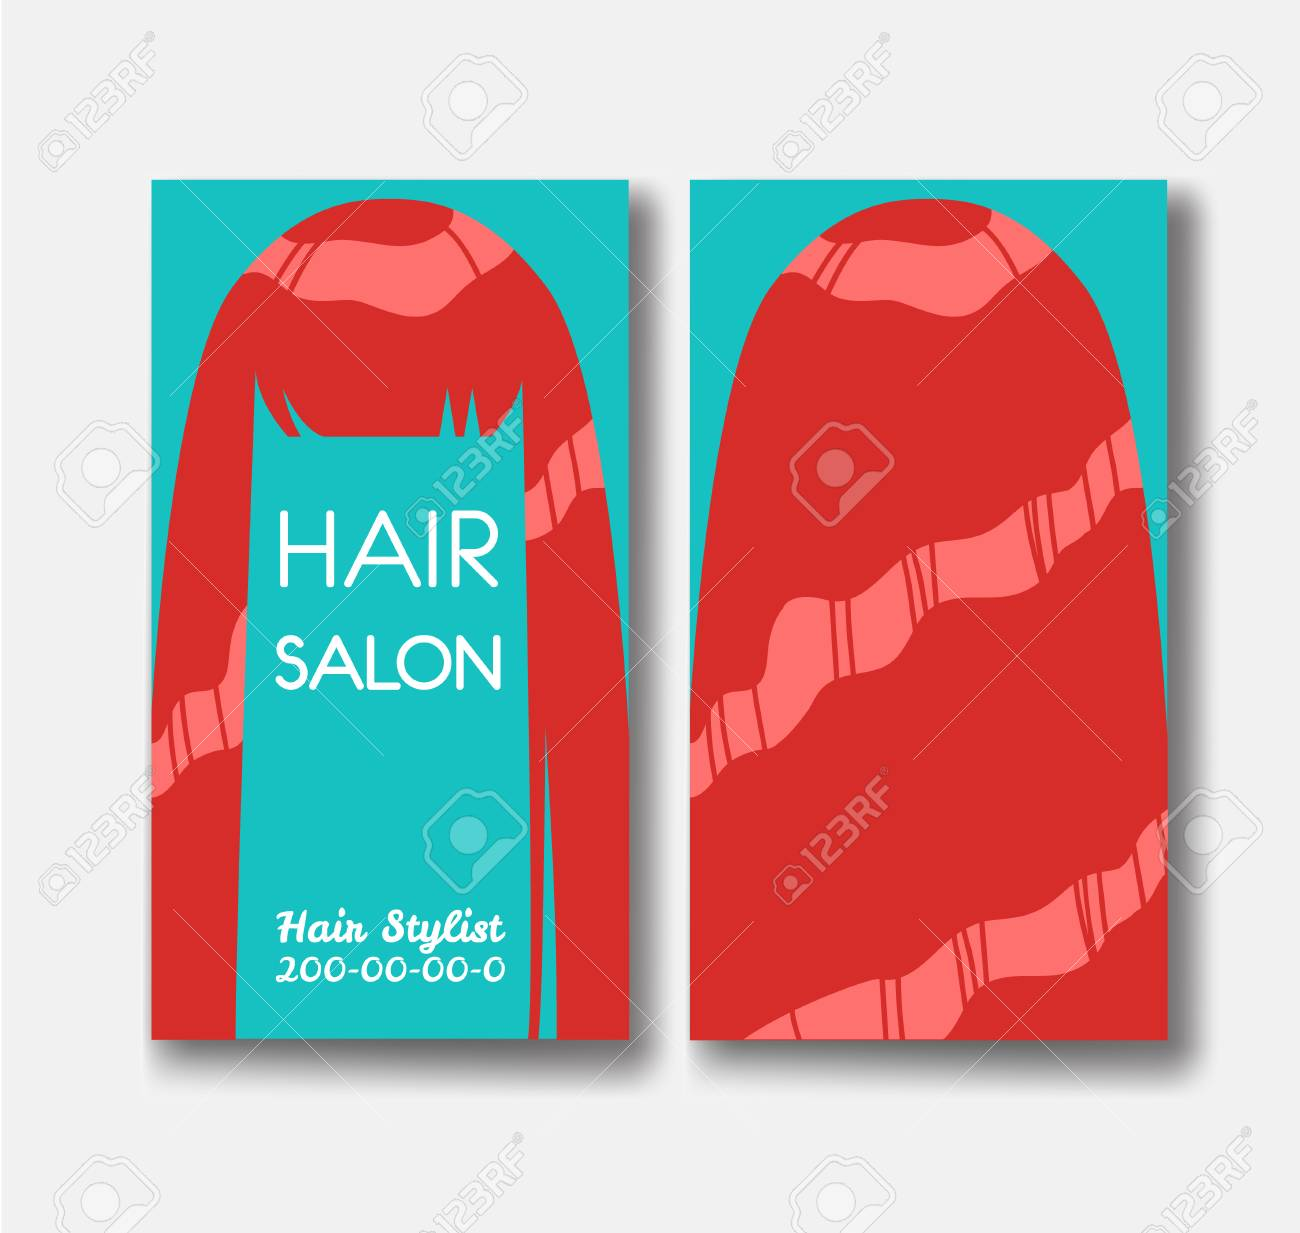 Hair salon business card templates with red hair on green backgr hair salon business card templates with red hair on green backgr stock vector 88430721 flashek Gallery